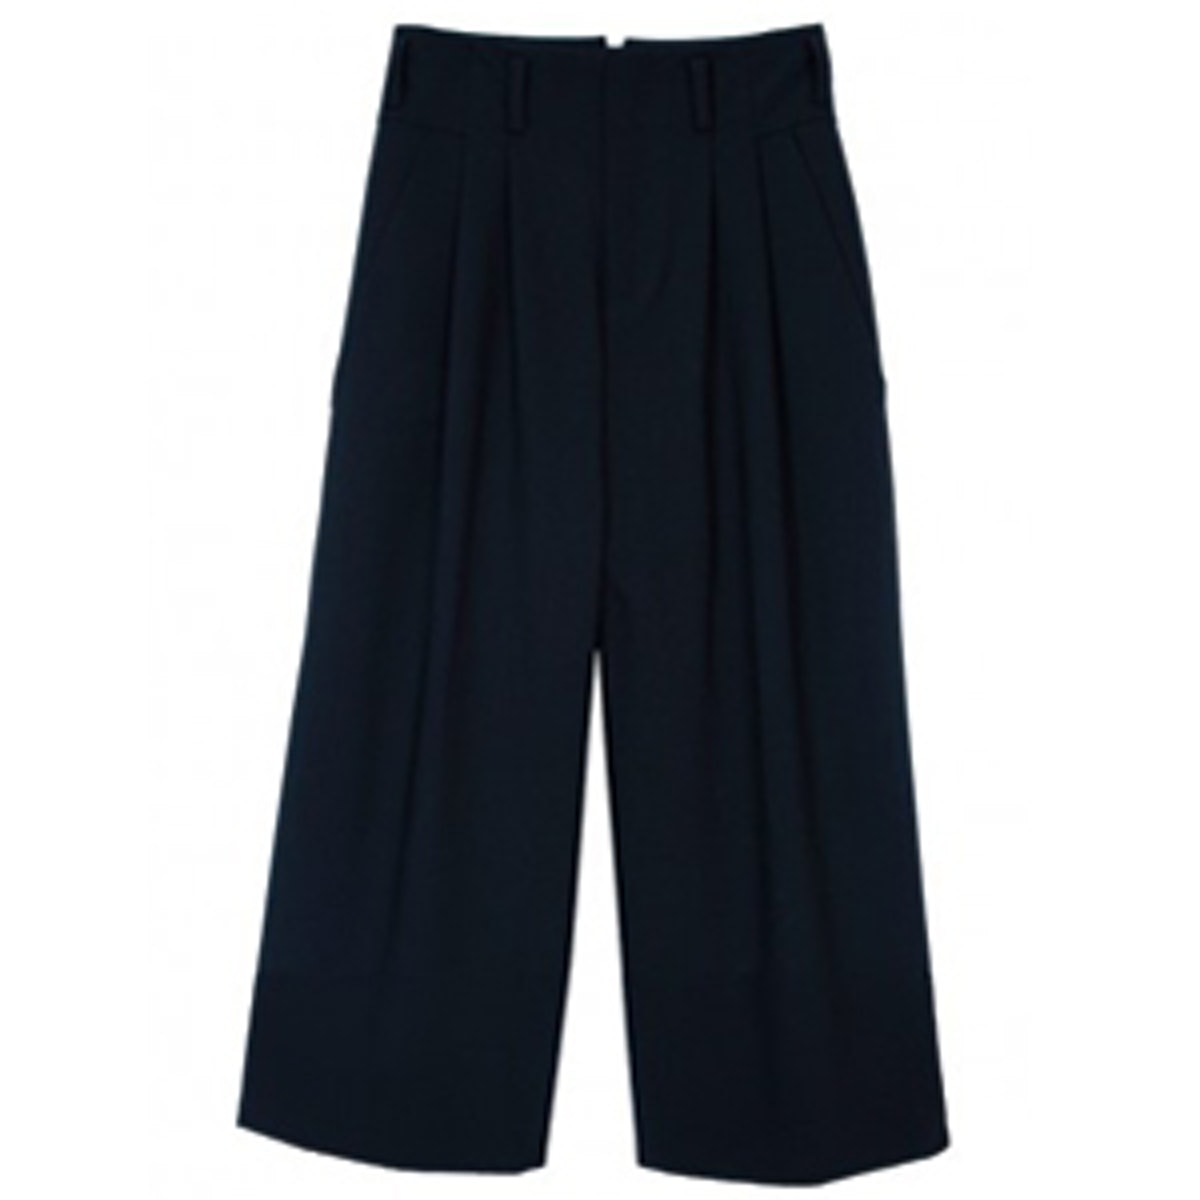 Pleated Culottes in Navy